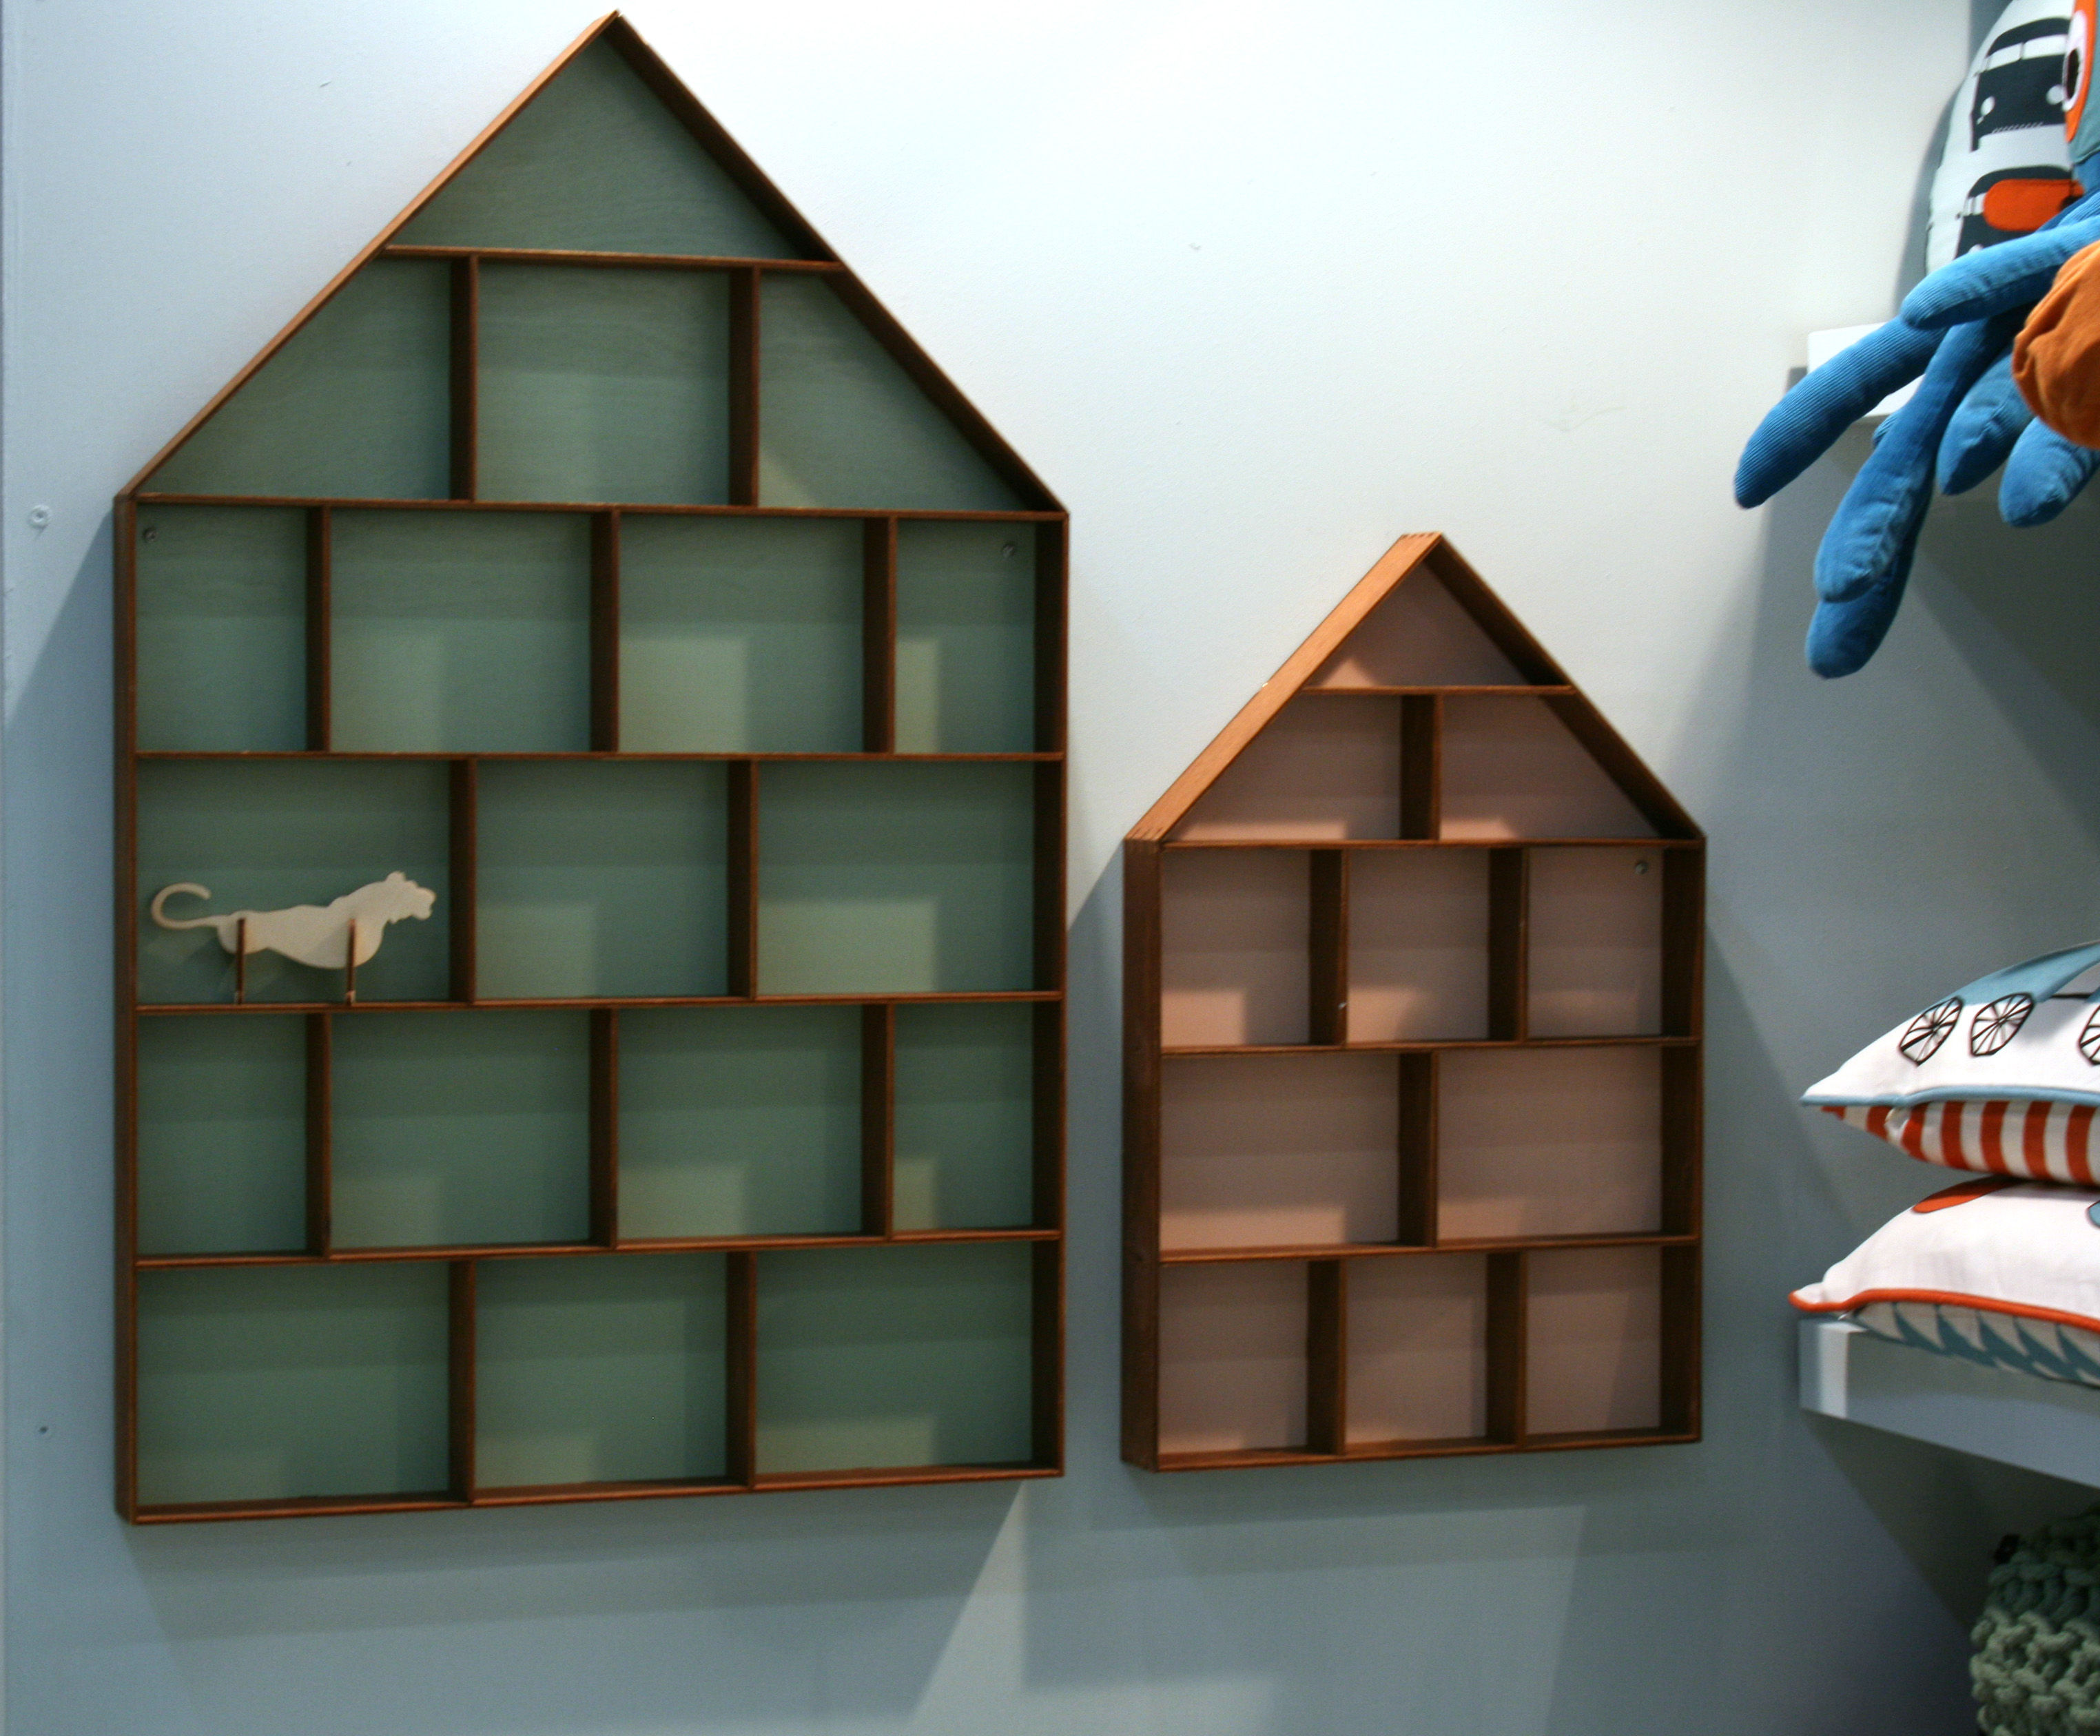 Exceptionnel The Little Dorm Shelf   Showcase 11 Rooms   Wood / White Background By Ferm  Living